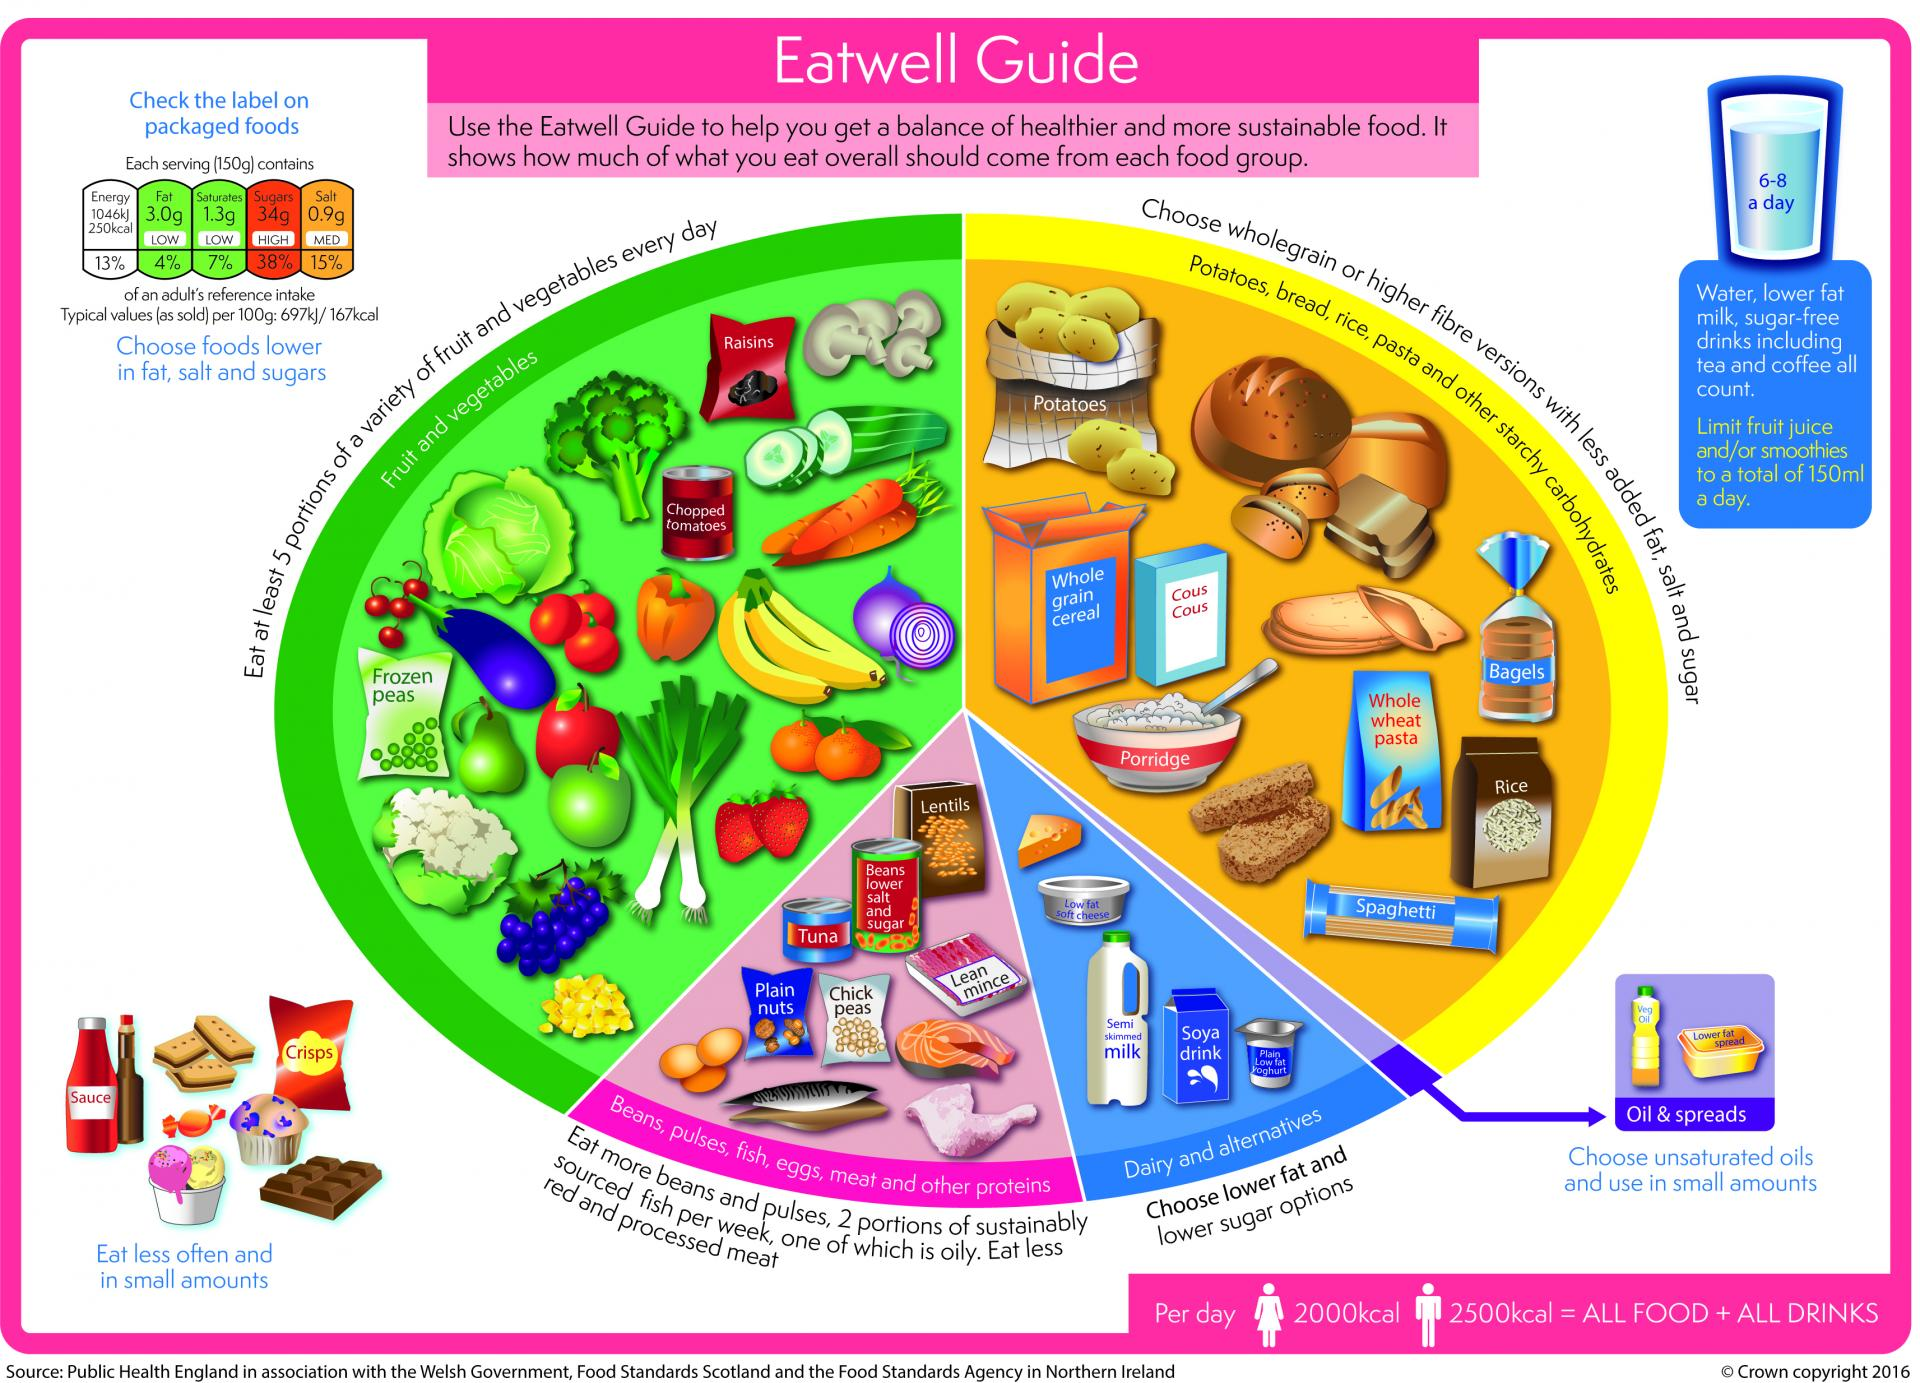 Eatwell Guide with fruit and vegetables, carbohydrates, protein, dairy and fats